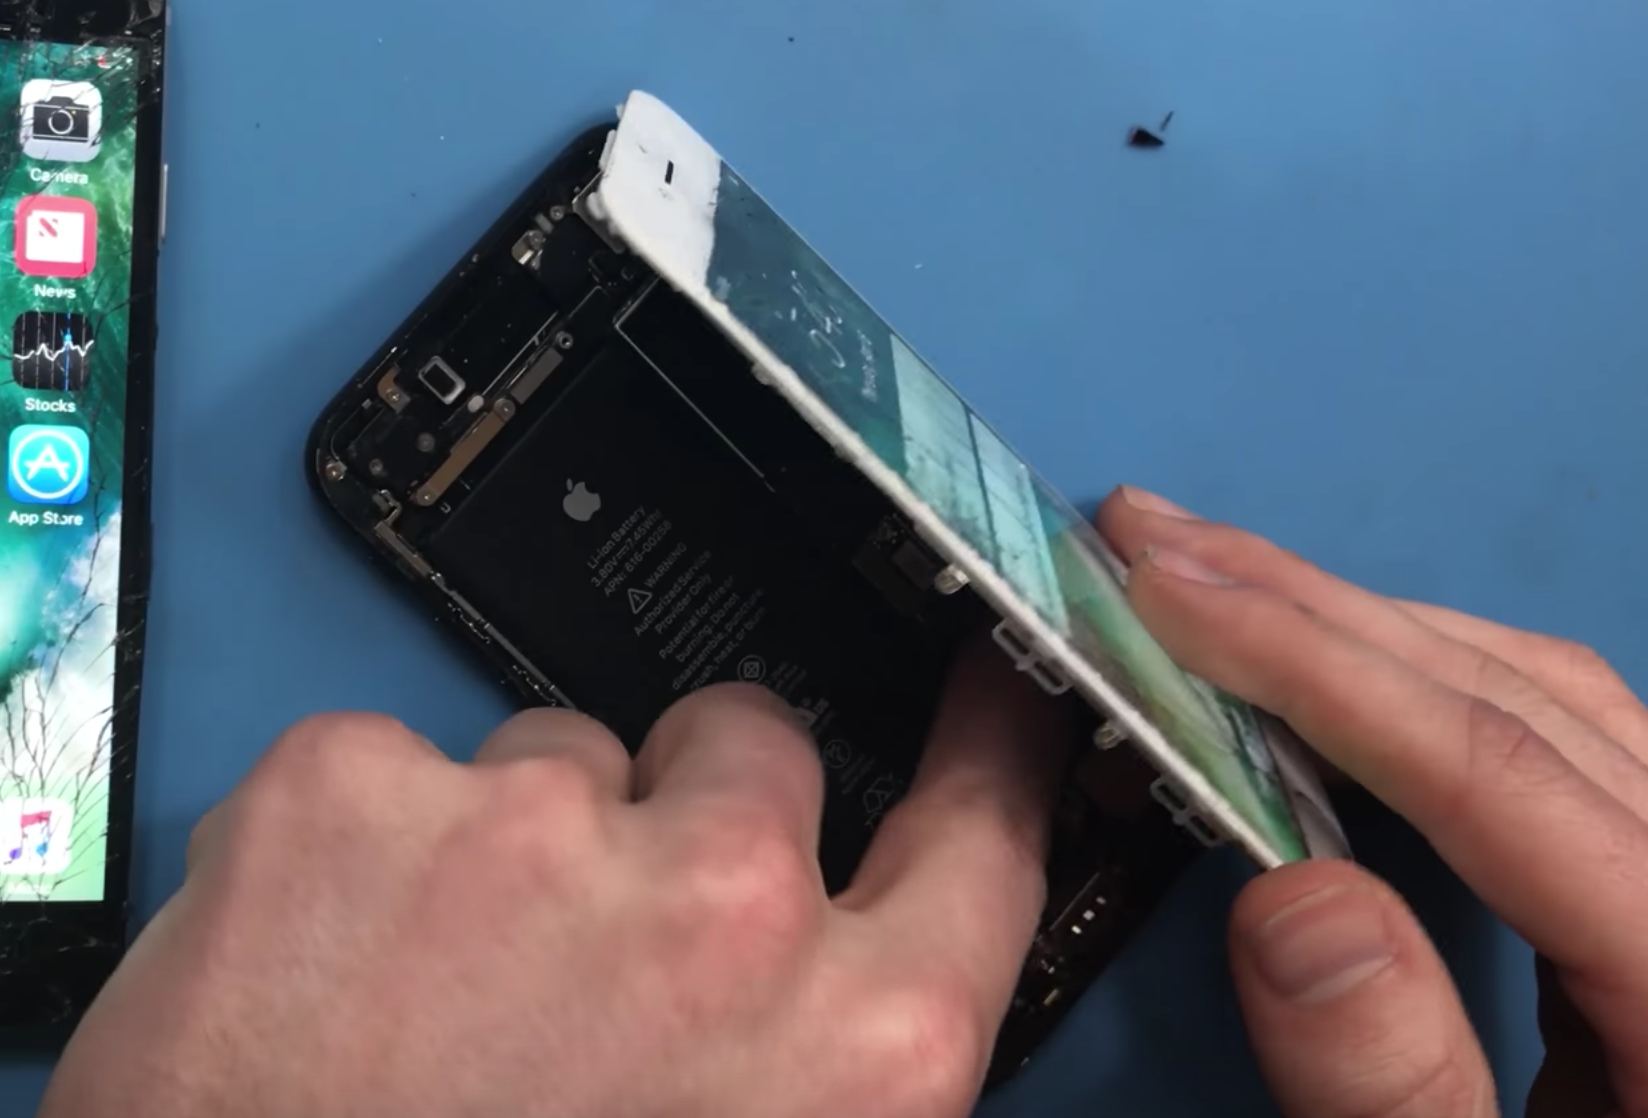 Touch id not working iphone 6s after screen replacement